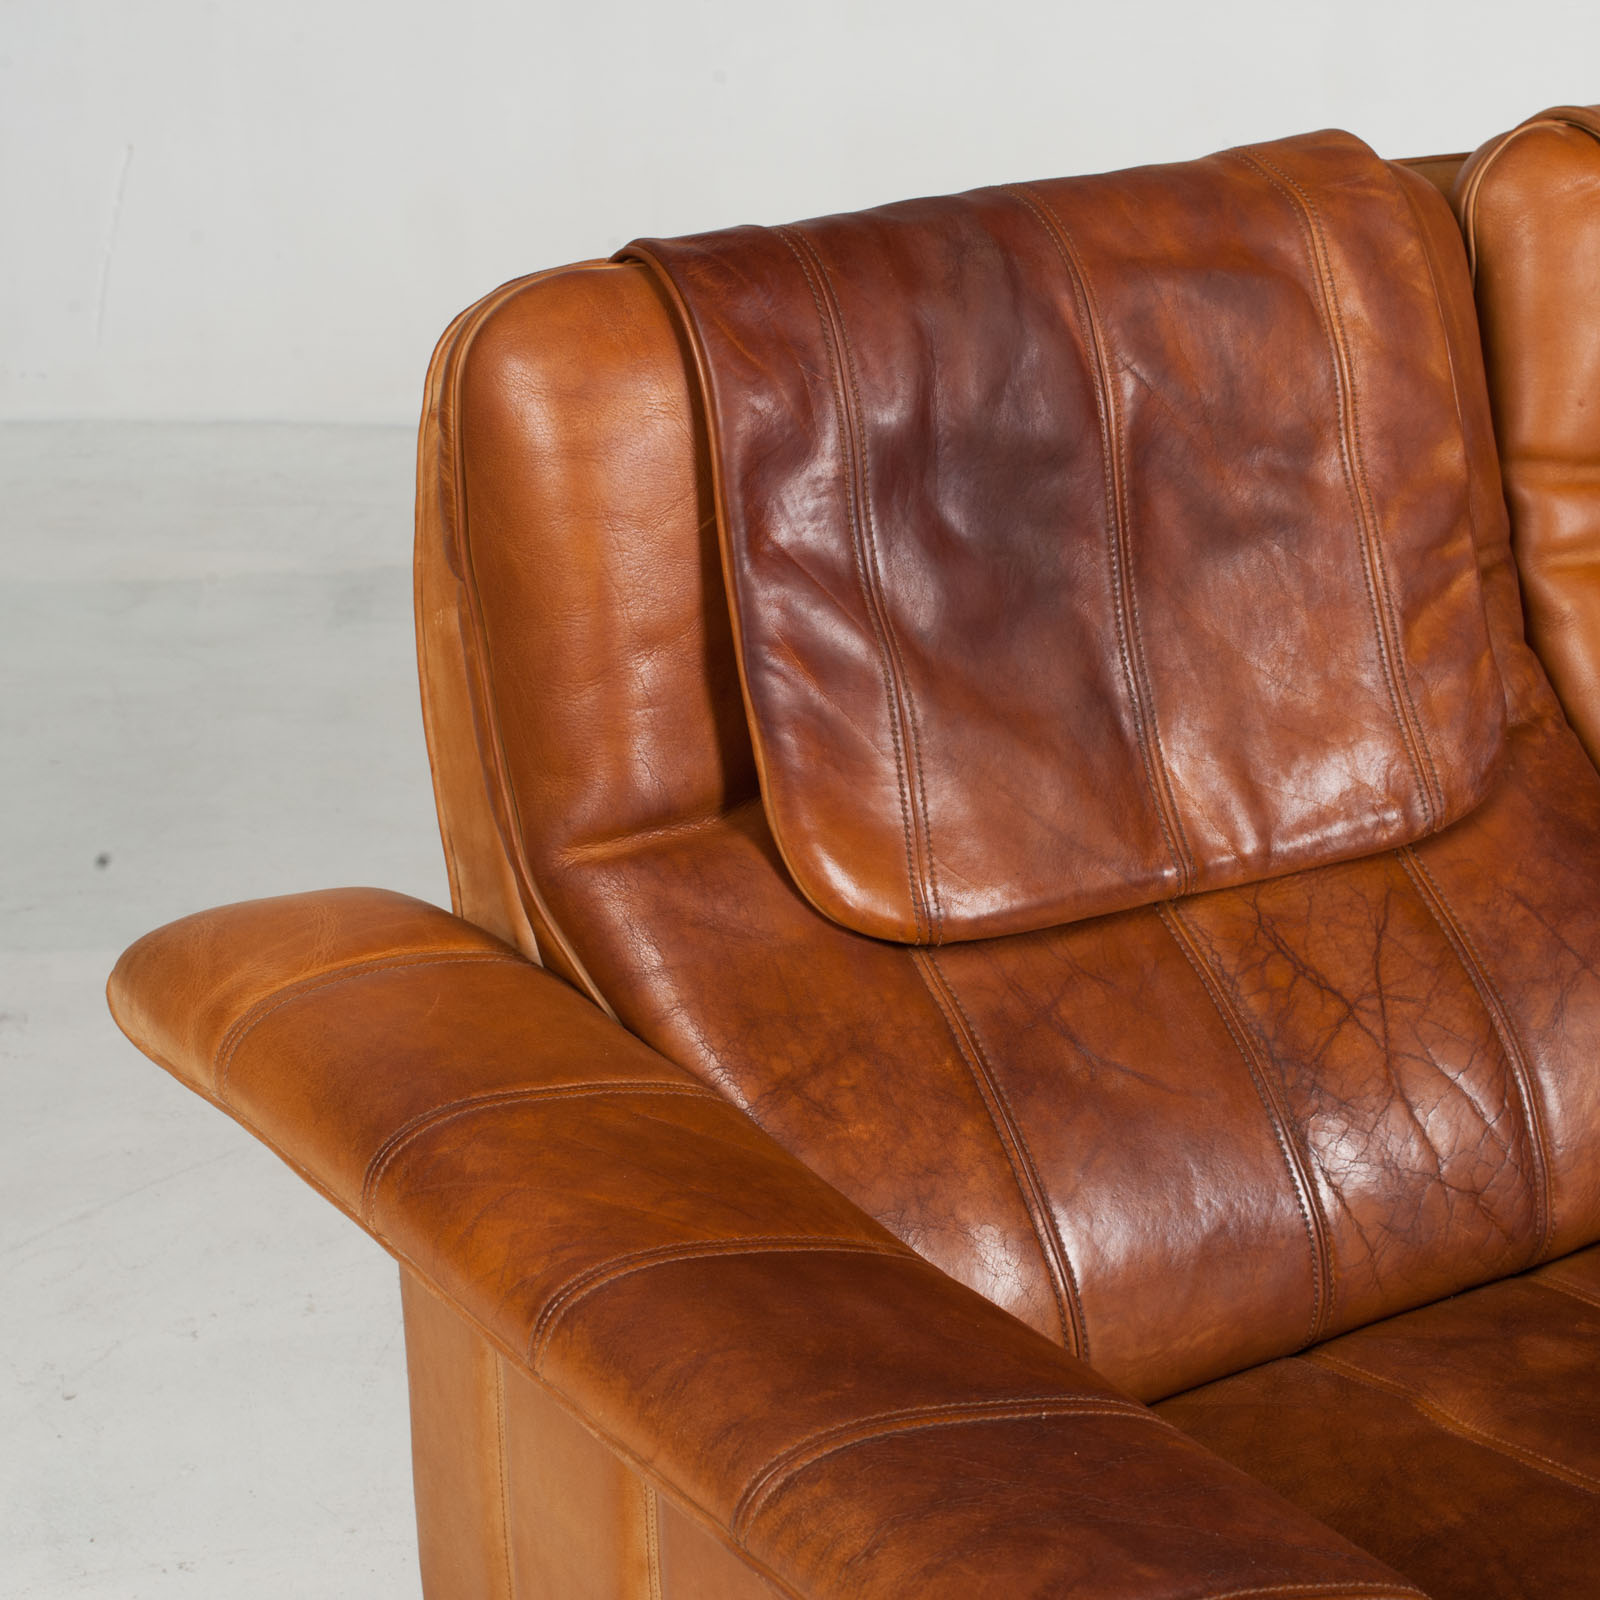 3 Seat Sofa By De Sede In Tan Leather 1970s Switzerland 06